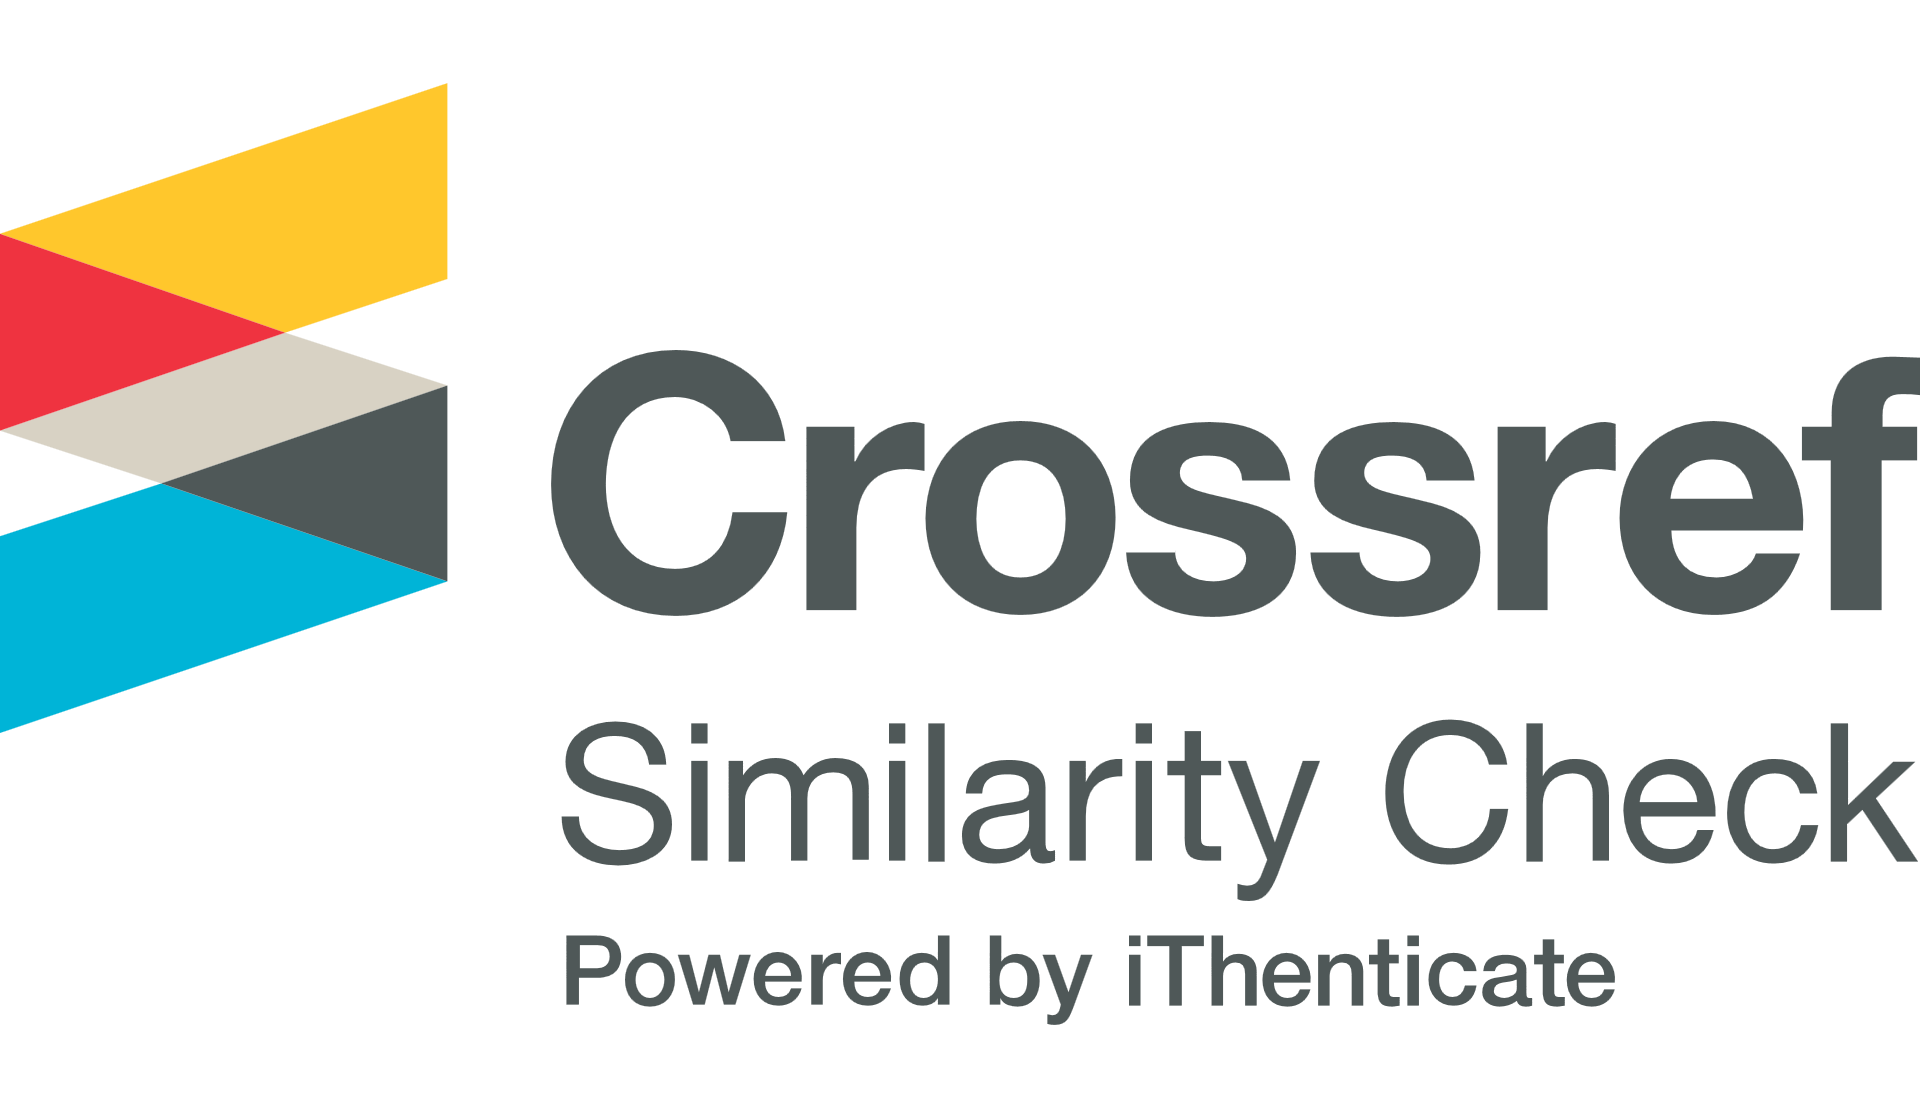 crossref similarity check logo